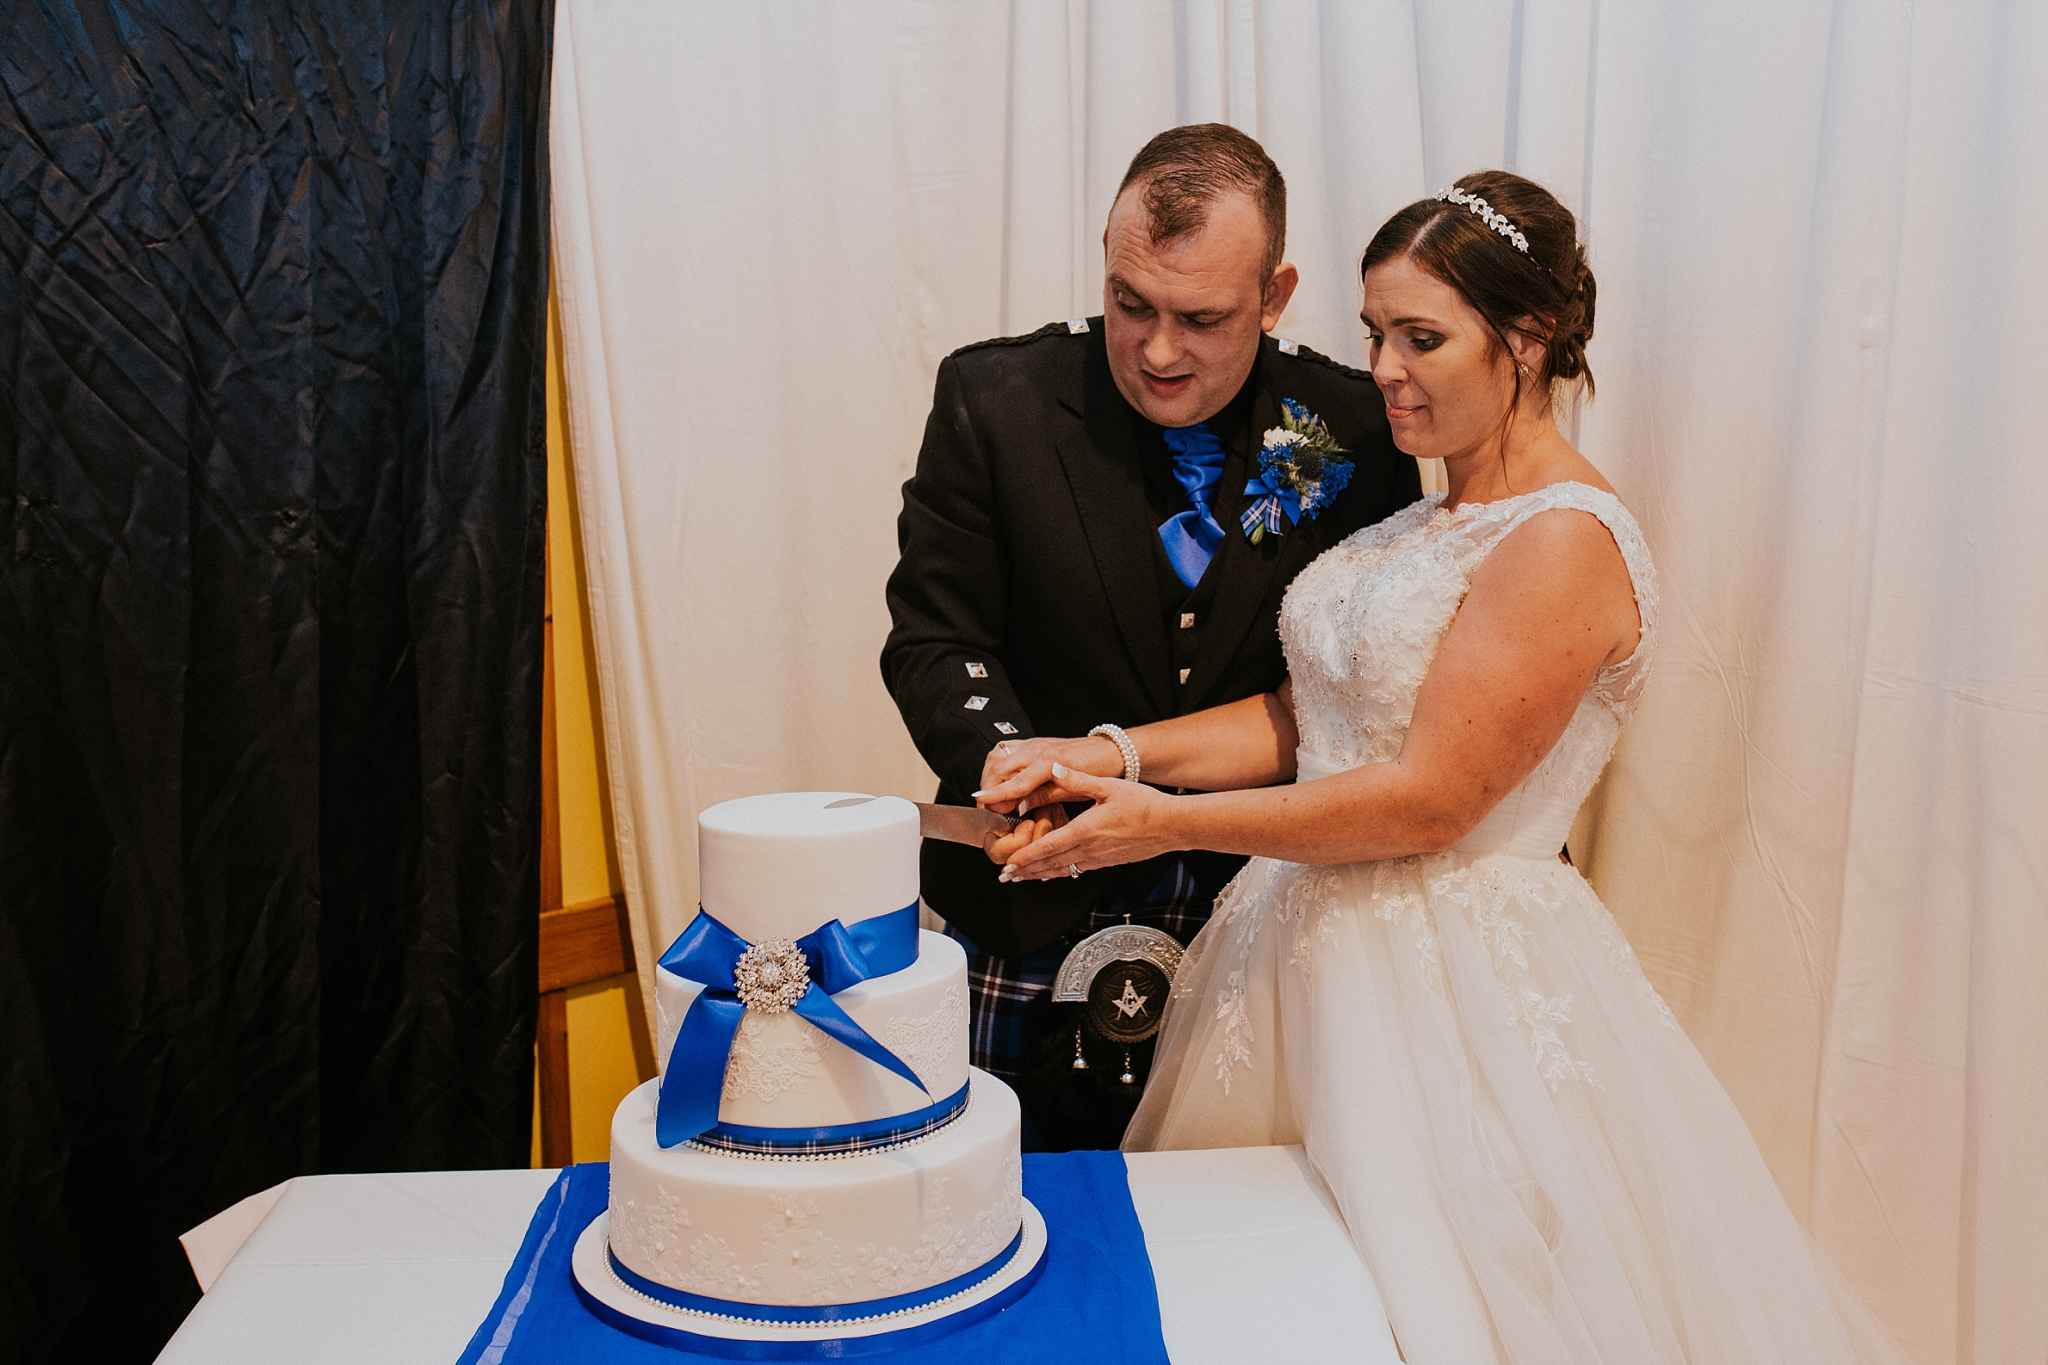 Bride and groom cutting the cake, carnish hall, north uist